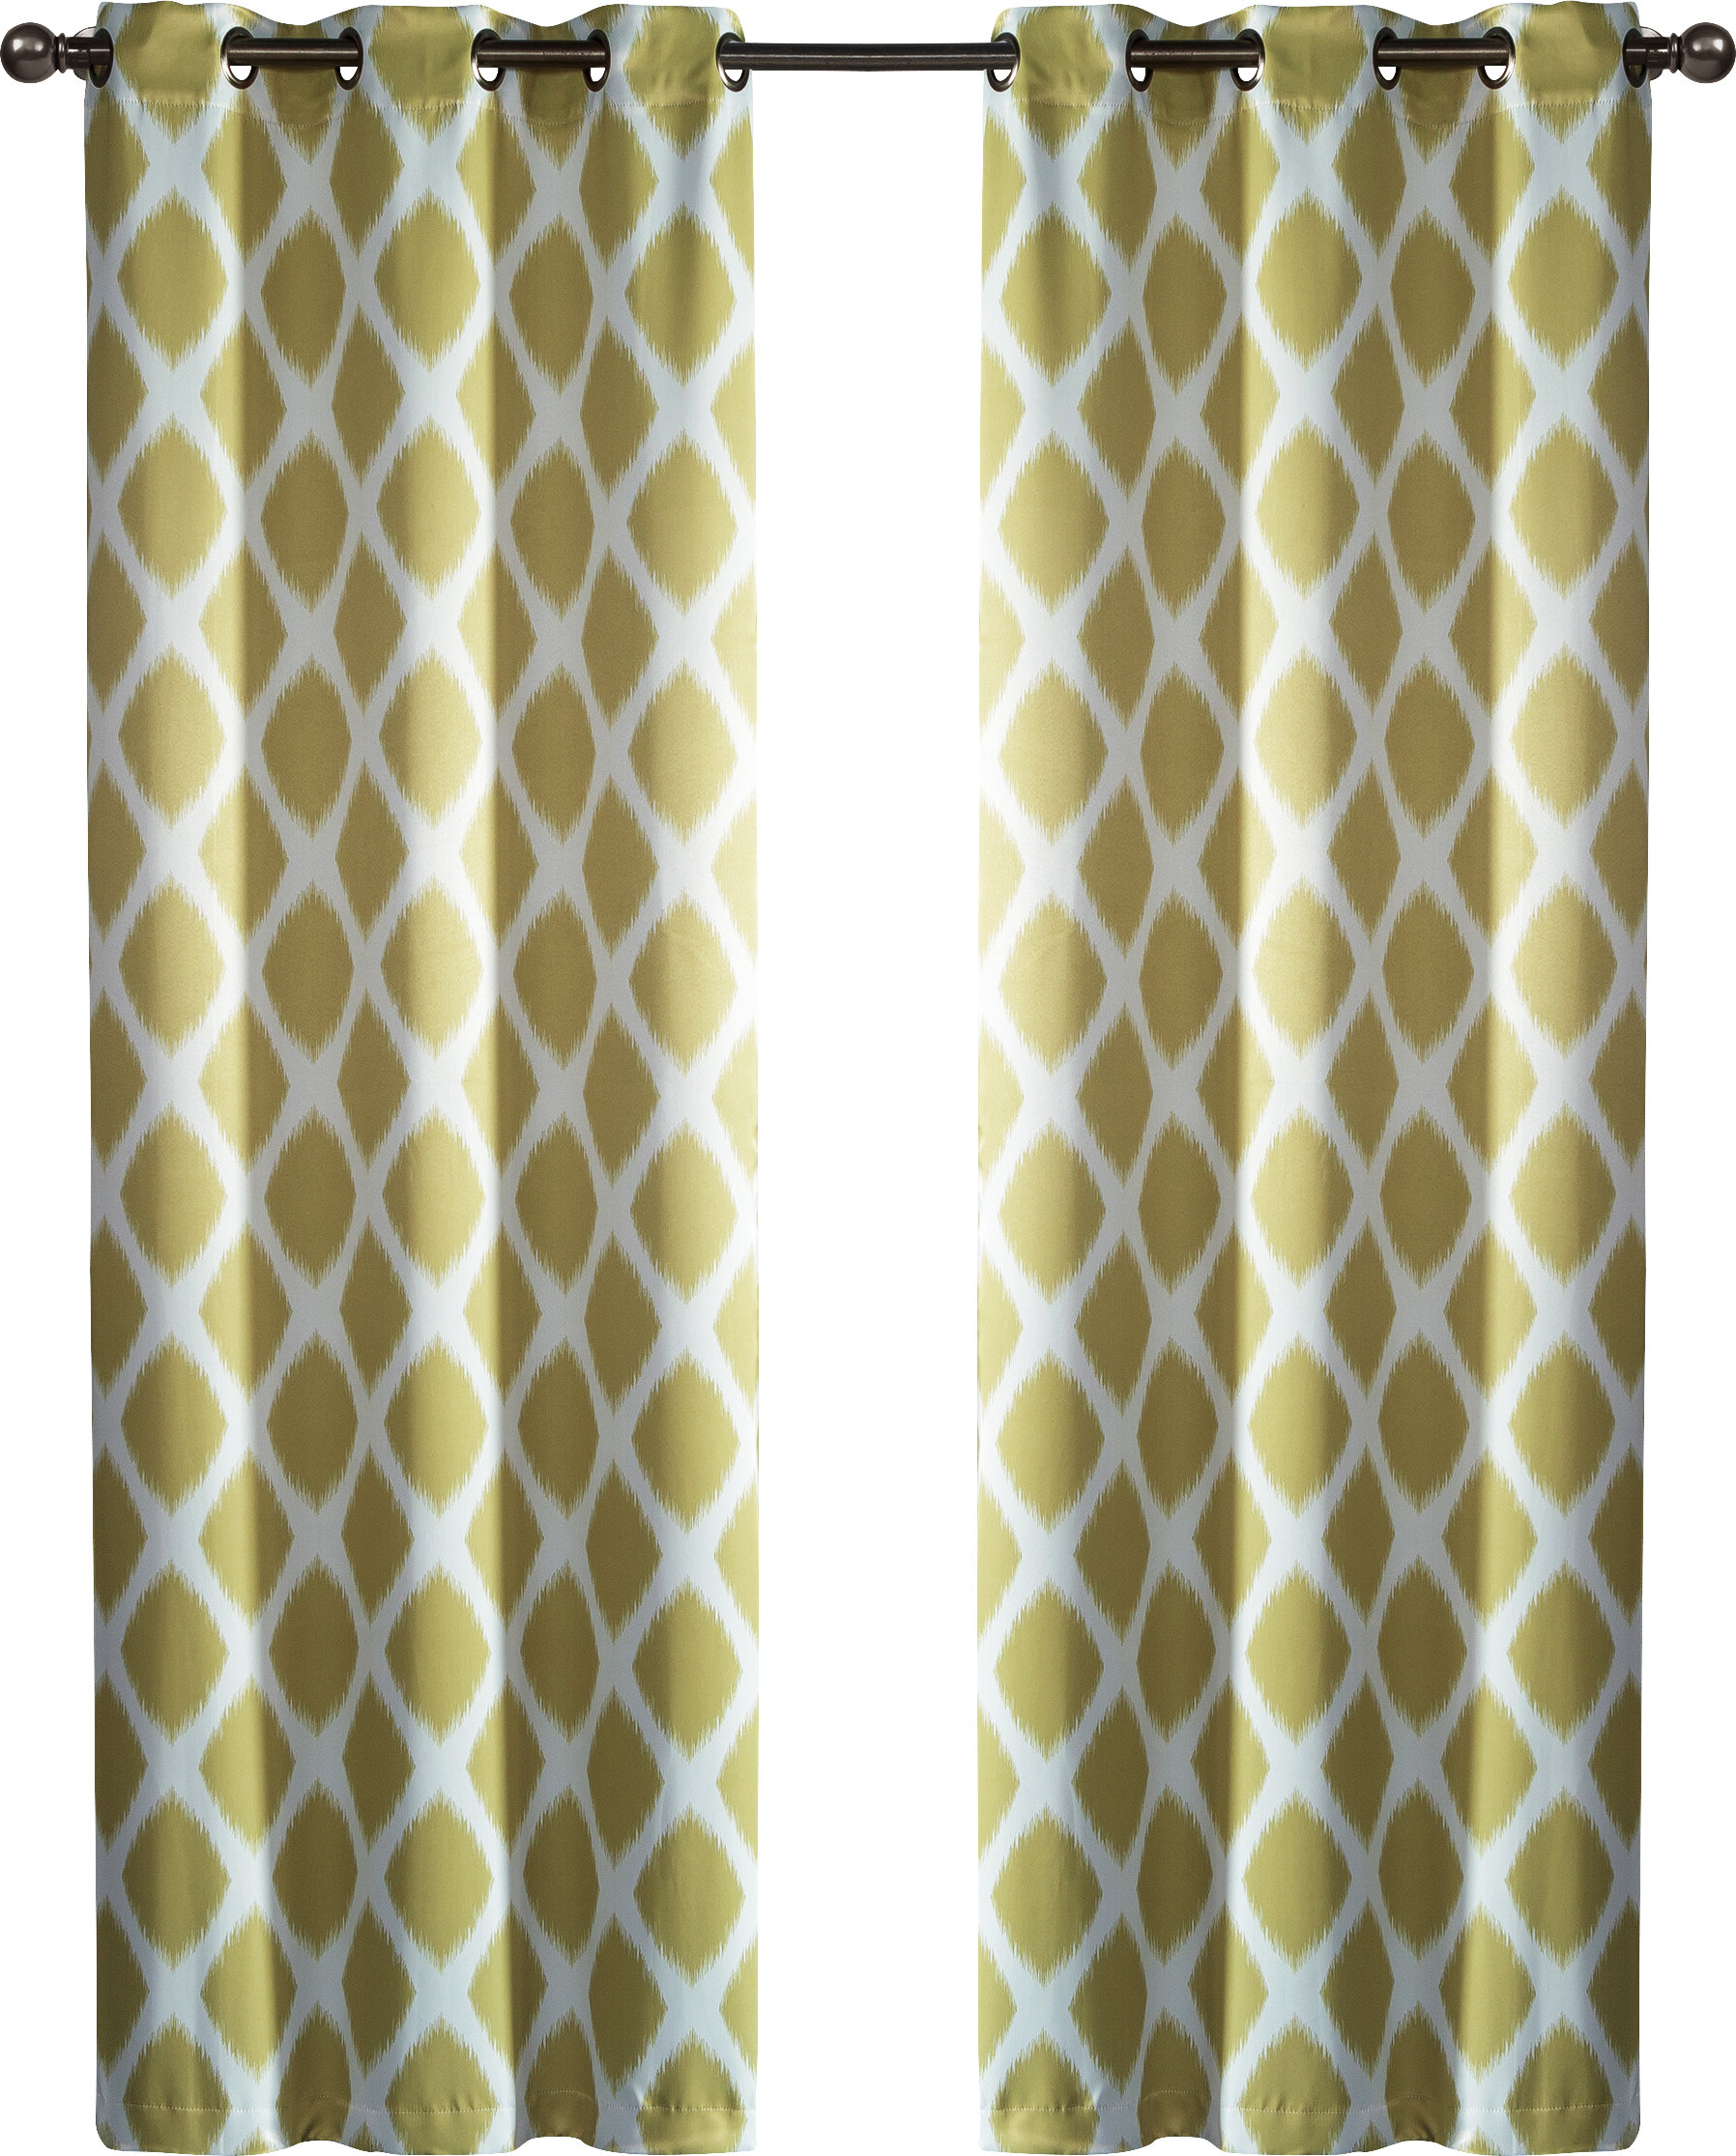 Geometric Print Textured Thermal Insulated Grommet Curtain Panels Intended For Famous Coley Geometric Room Darkening Thermal Grommet Curtain Panels (View 20 of 20)